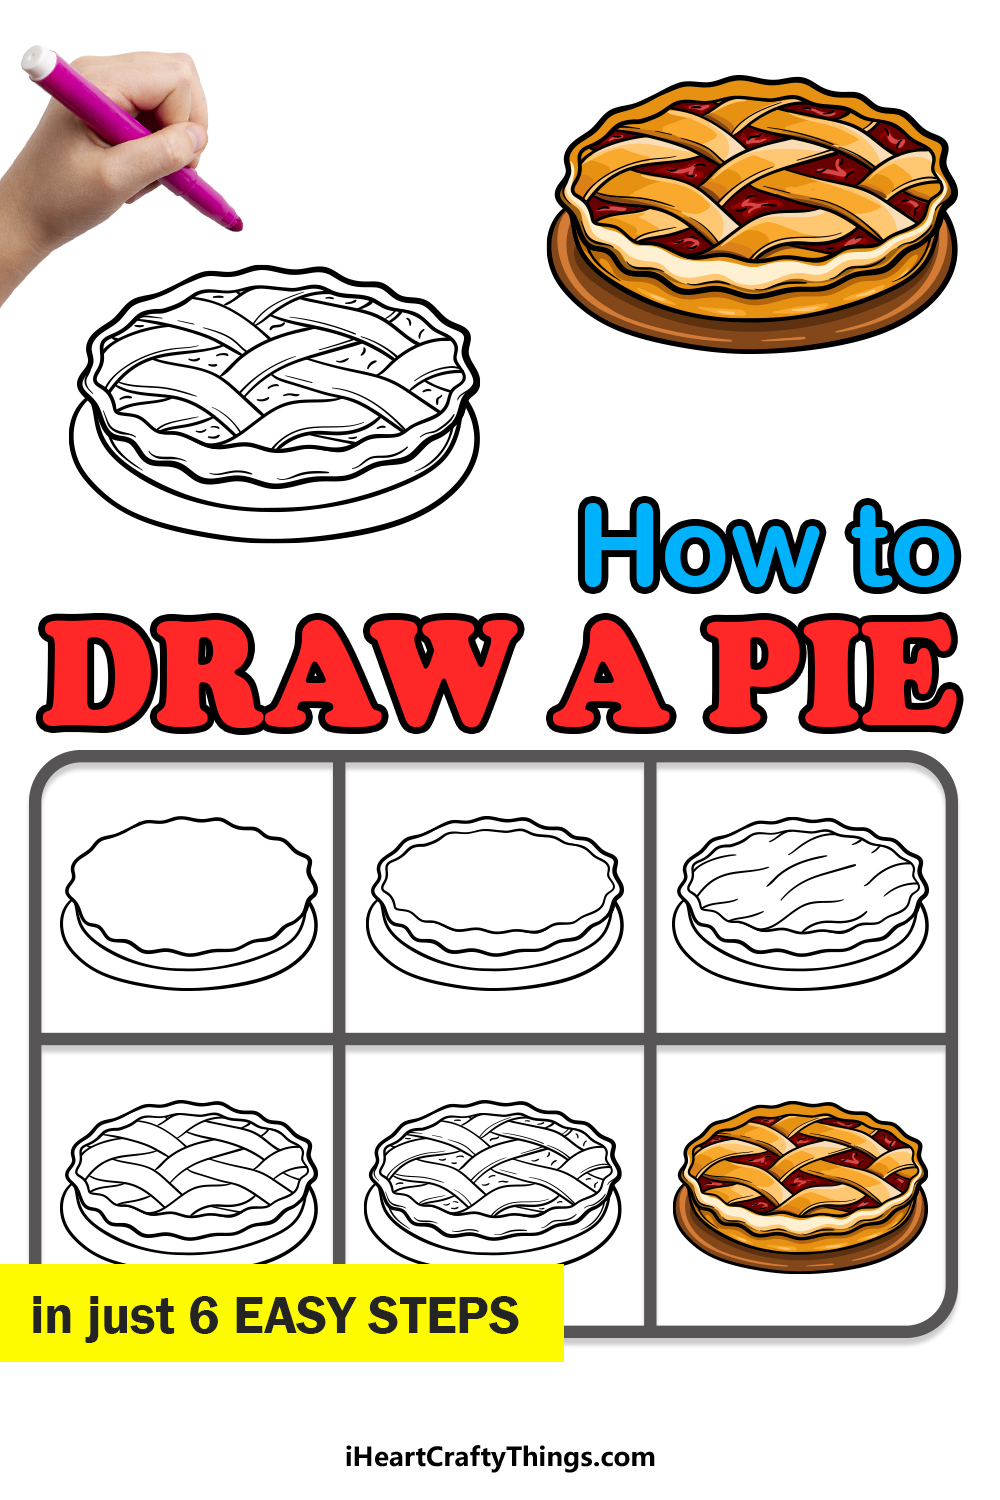 how to draw a pie in 6 easy steps